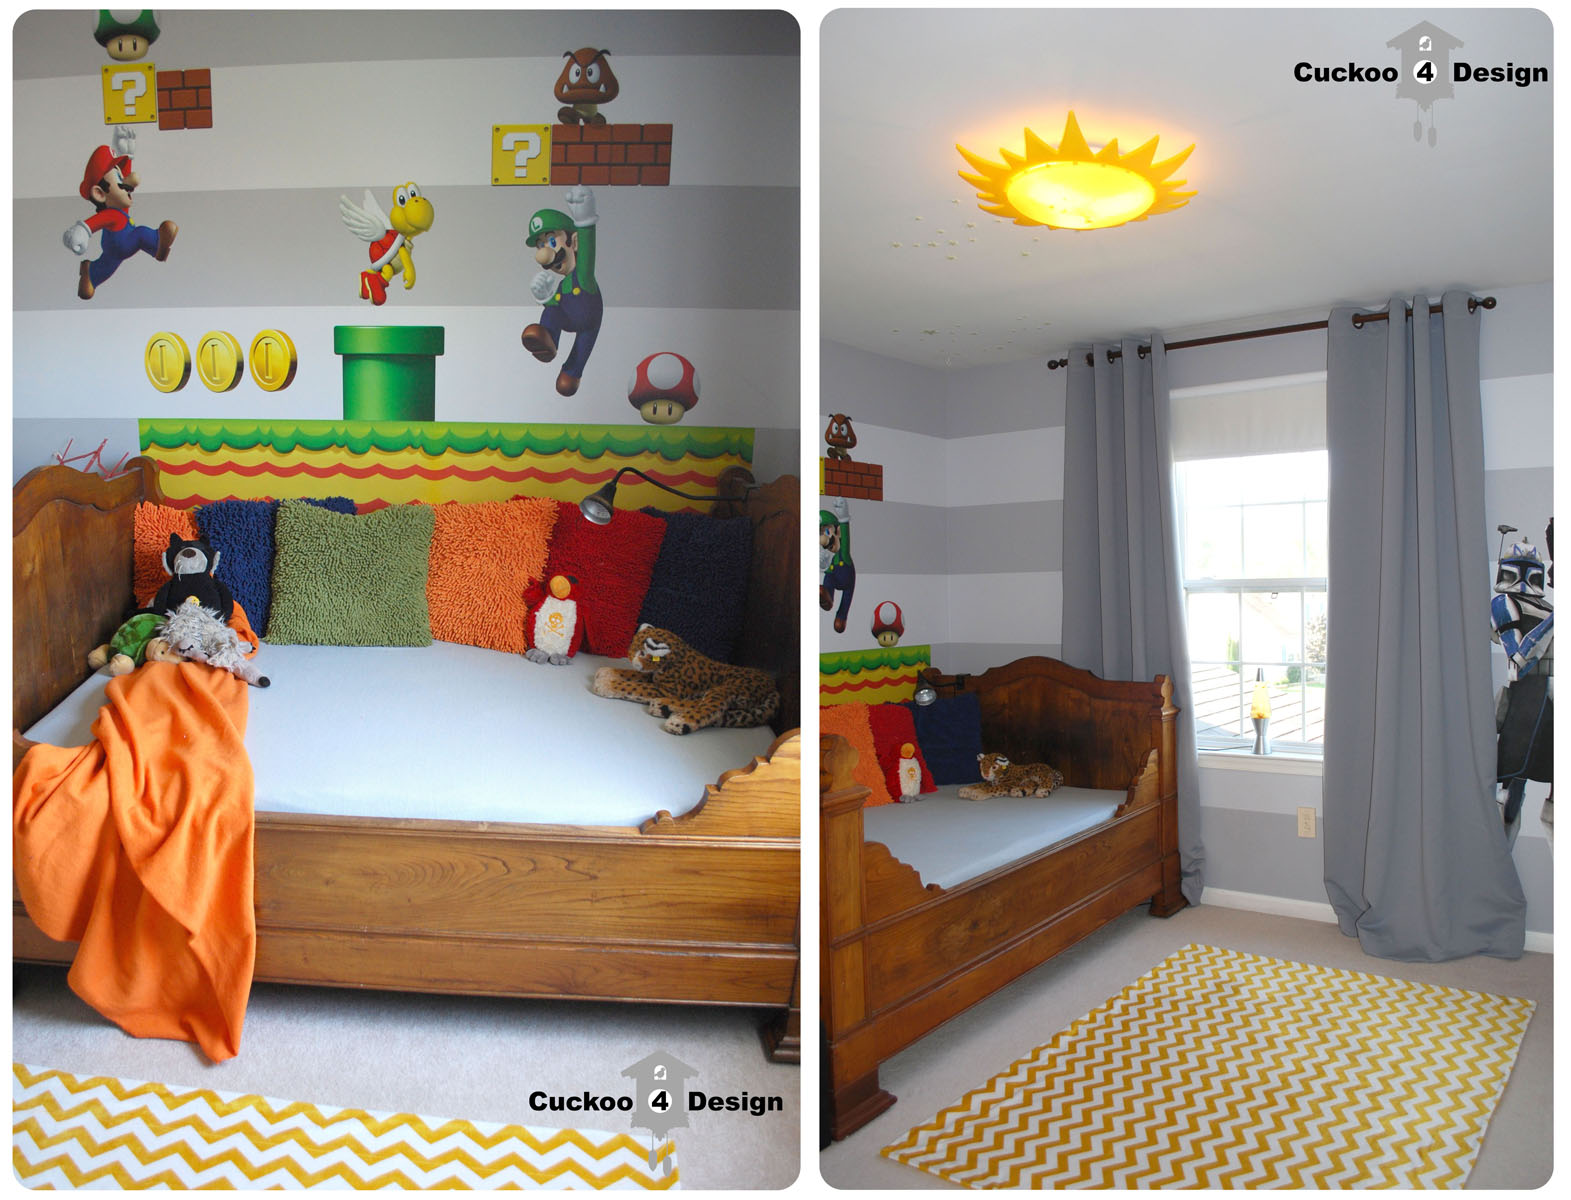 mario brothers room idea cuckoo4design